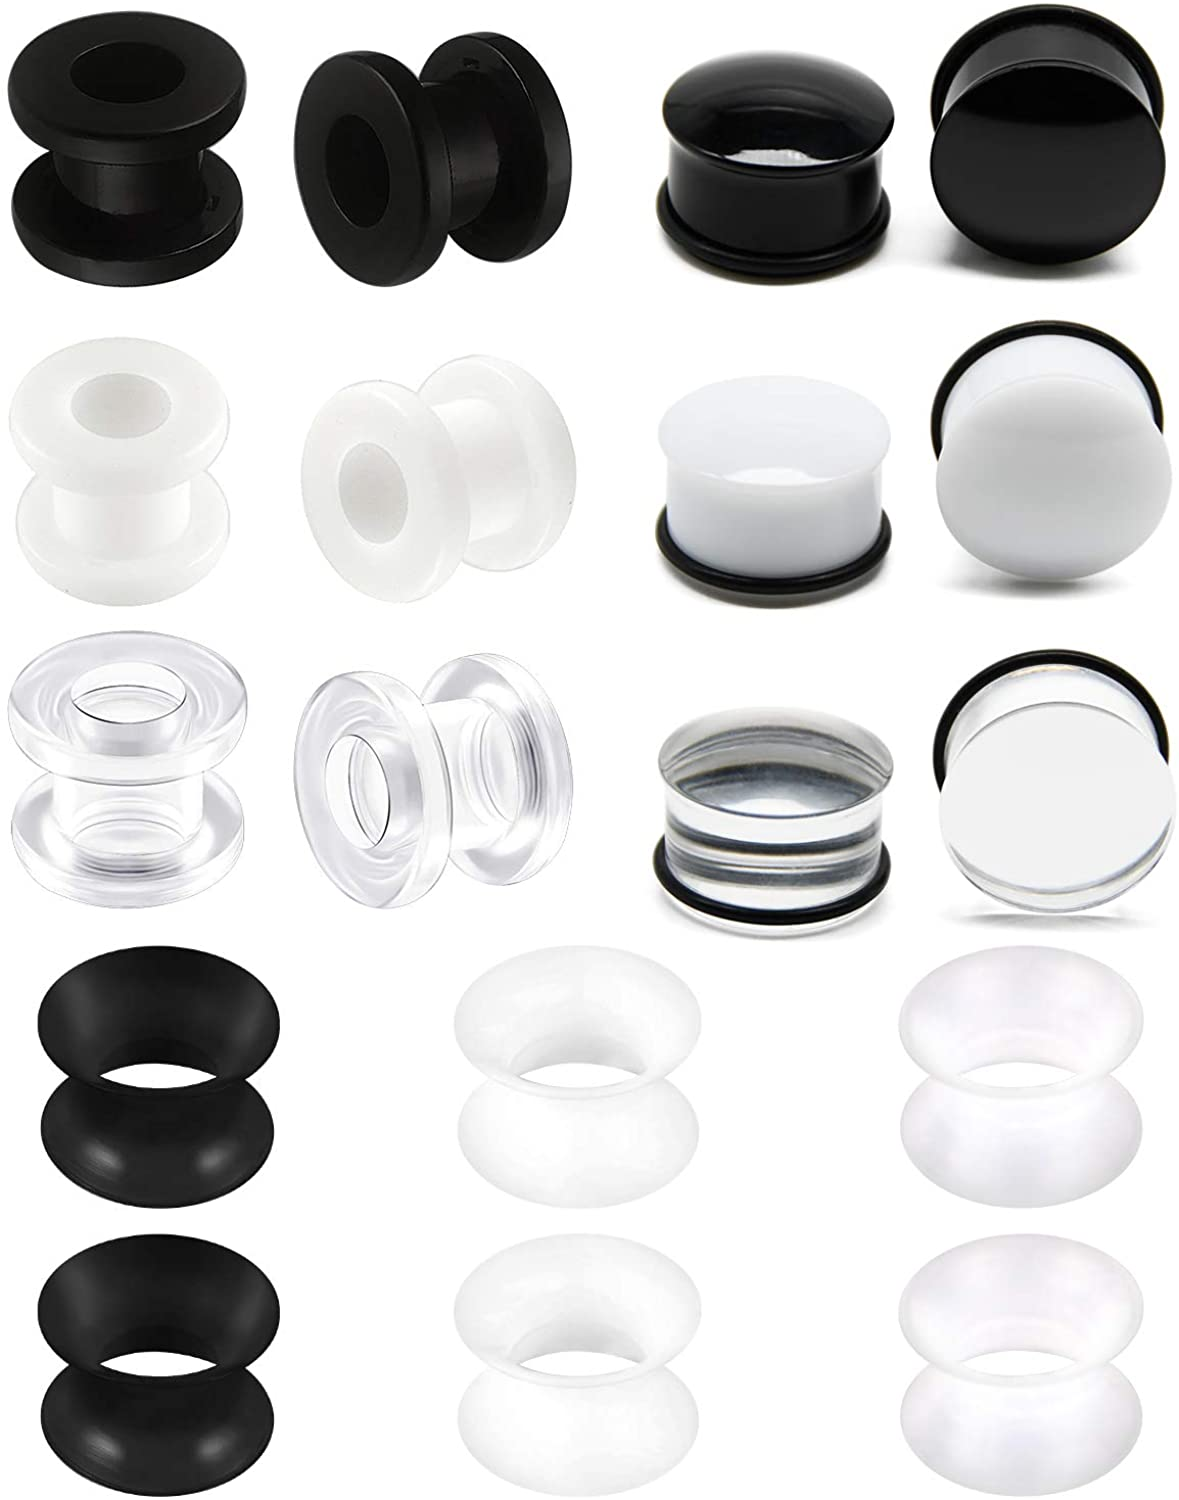 Briana Williams Acrylic & Ultra Thin Silicone Tunnel Plugs Expander Clear Black White Ear Gauges Expander Ear Stretching Gauge Earlets Plug Gauges Earring Lobe Piercing 6-16MM